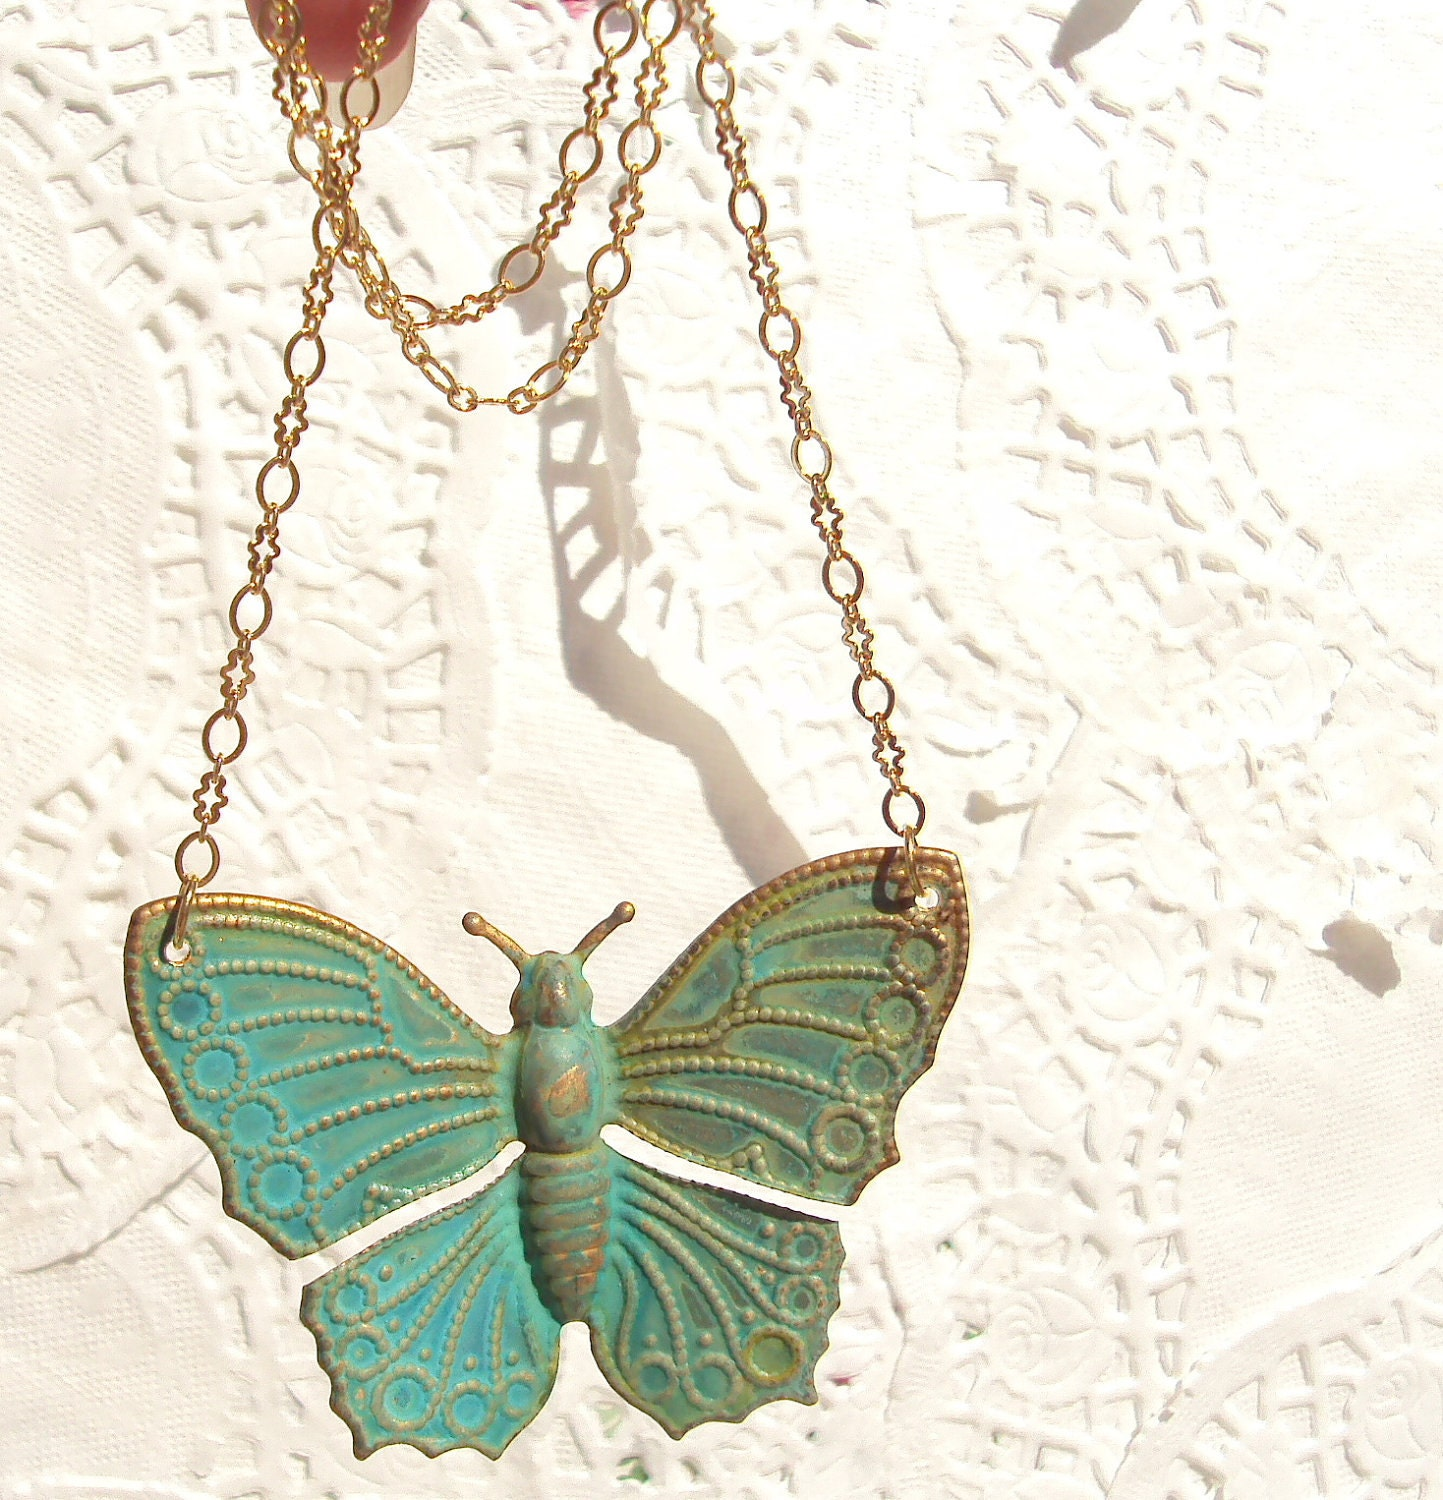 Soaring - Butterfly Necklace Verdigris